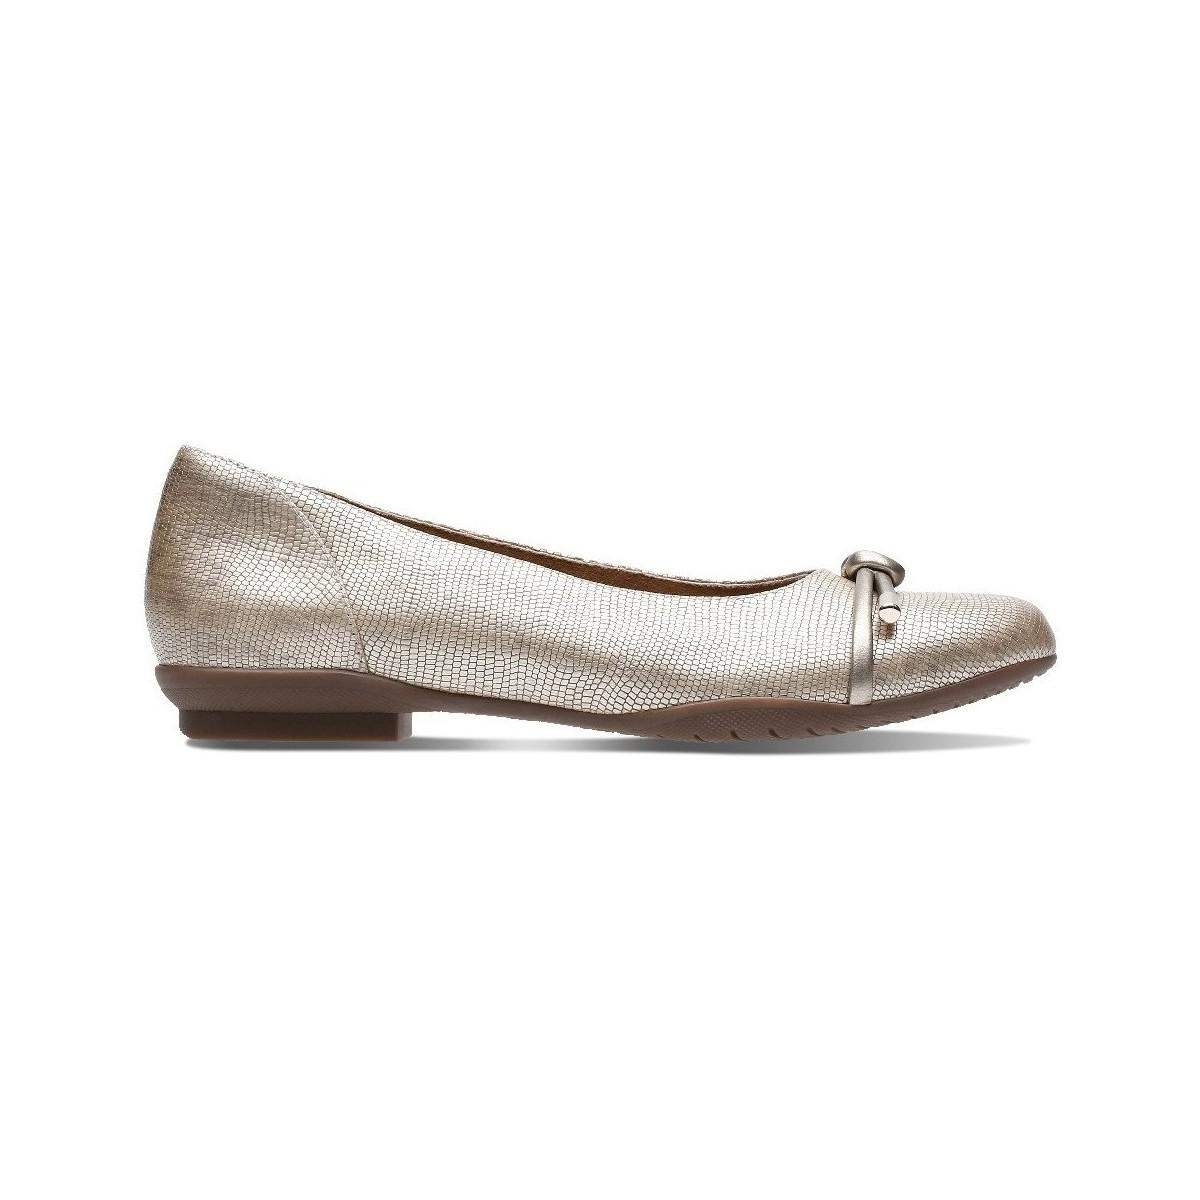 Clearance For Sale Cheap View Clarks Neenah Poppy women's Shoes (Pumps / Ballerinas) in Recommend Cheap Sale Best Seller 2kZhoS37SA